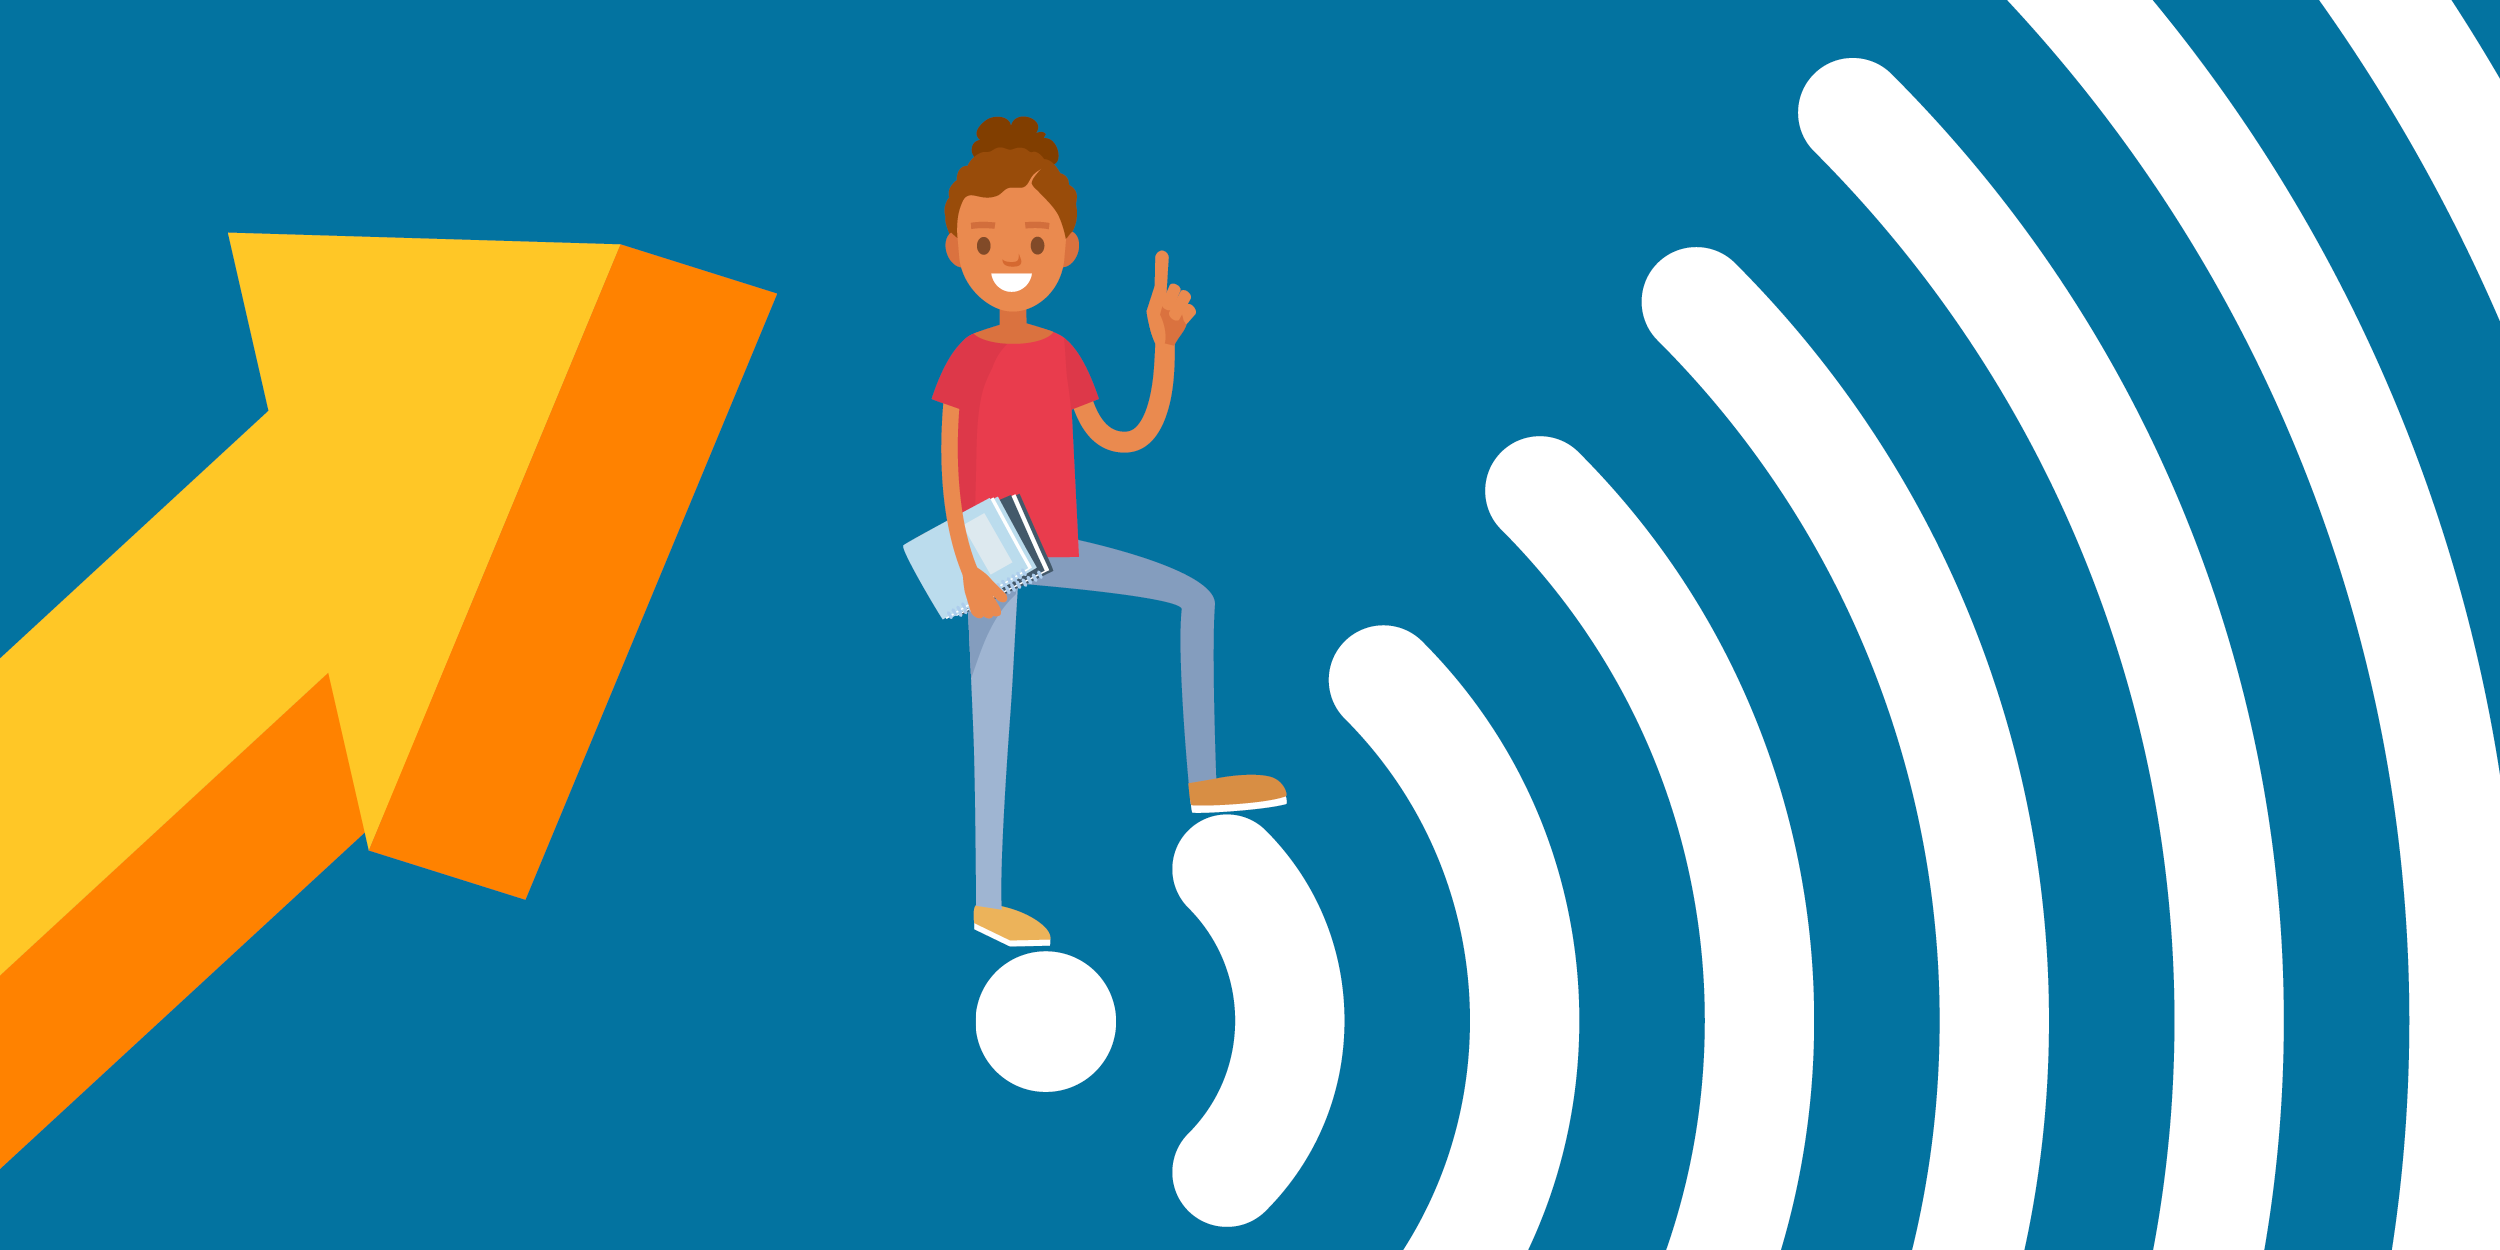 an arrow pointing at a African American female student who is climbing up a Wi-Fi symbol, representing people who are benefiting from Mobile Beacon's service via nonprofits